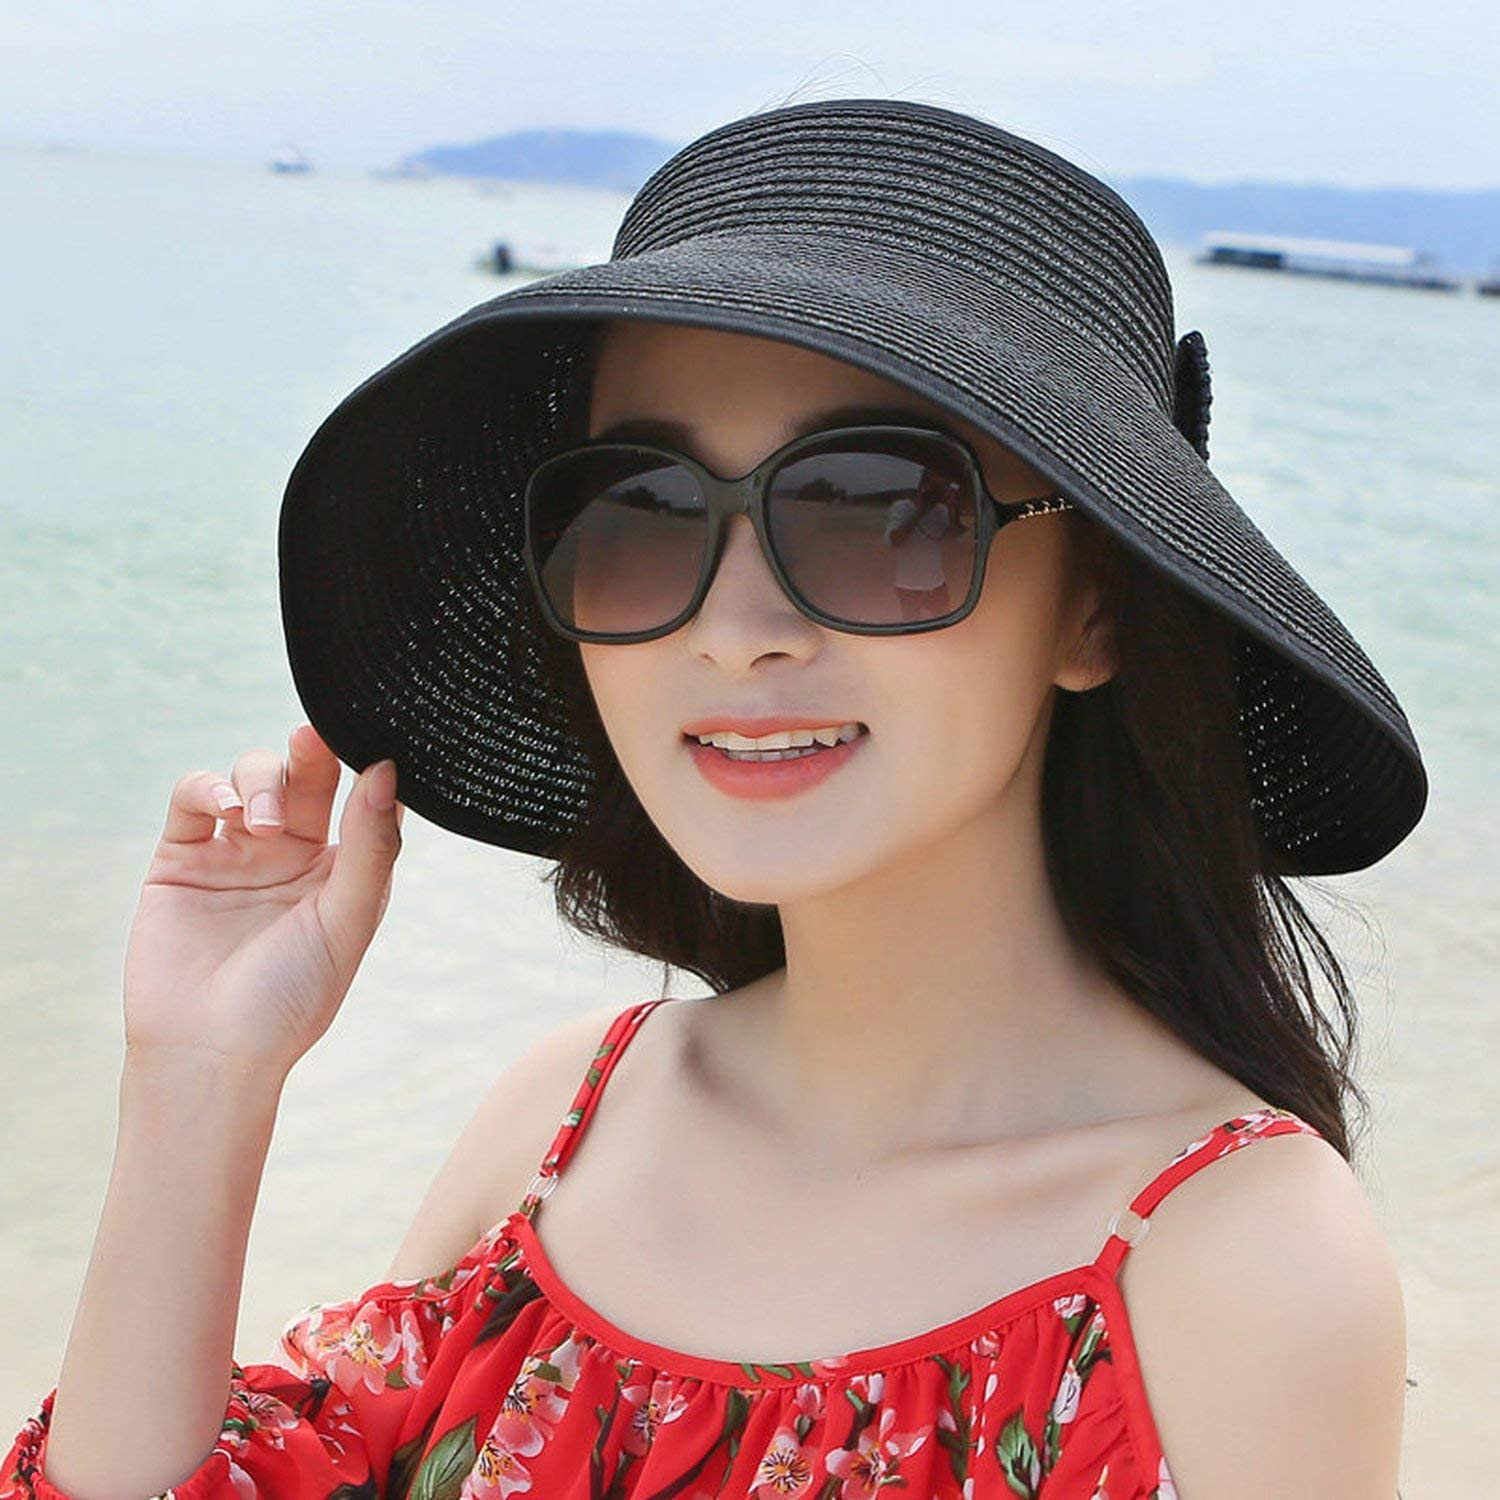 Straw Hat Visors Cap Foldable Wide Large Brim Sun Hat Beach Hats Straw Hat Wholesale Chapeau,Pink,55-58Cm